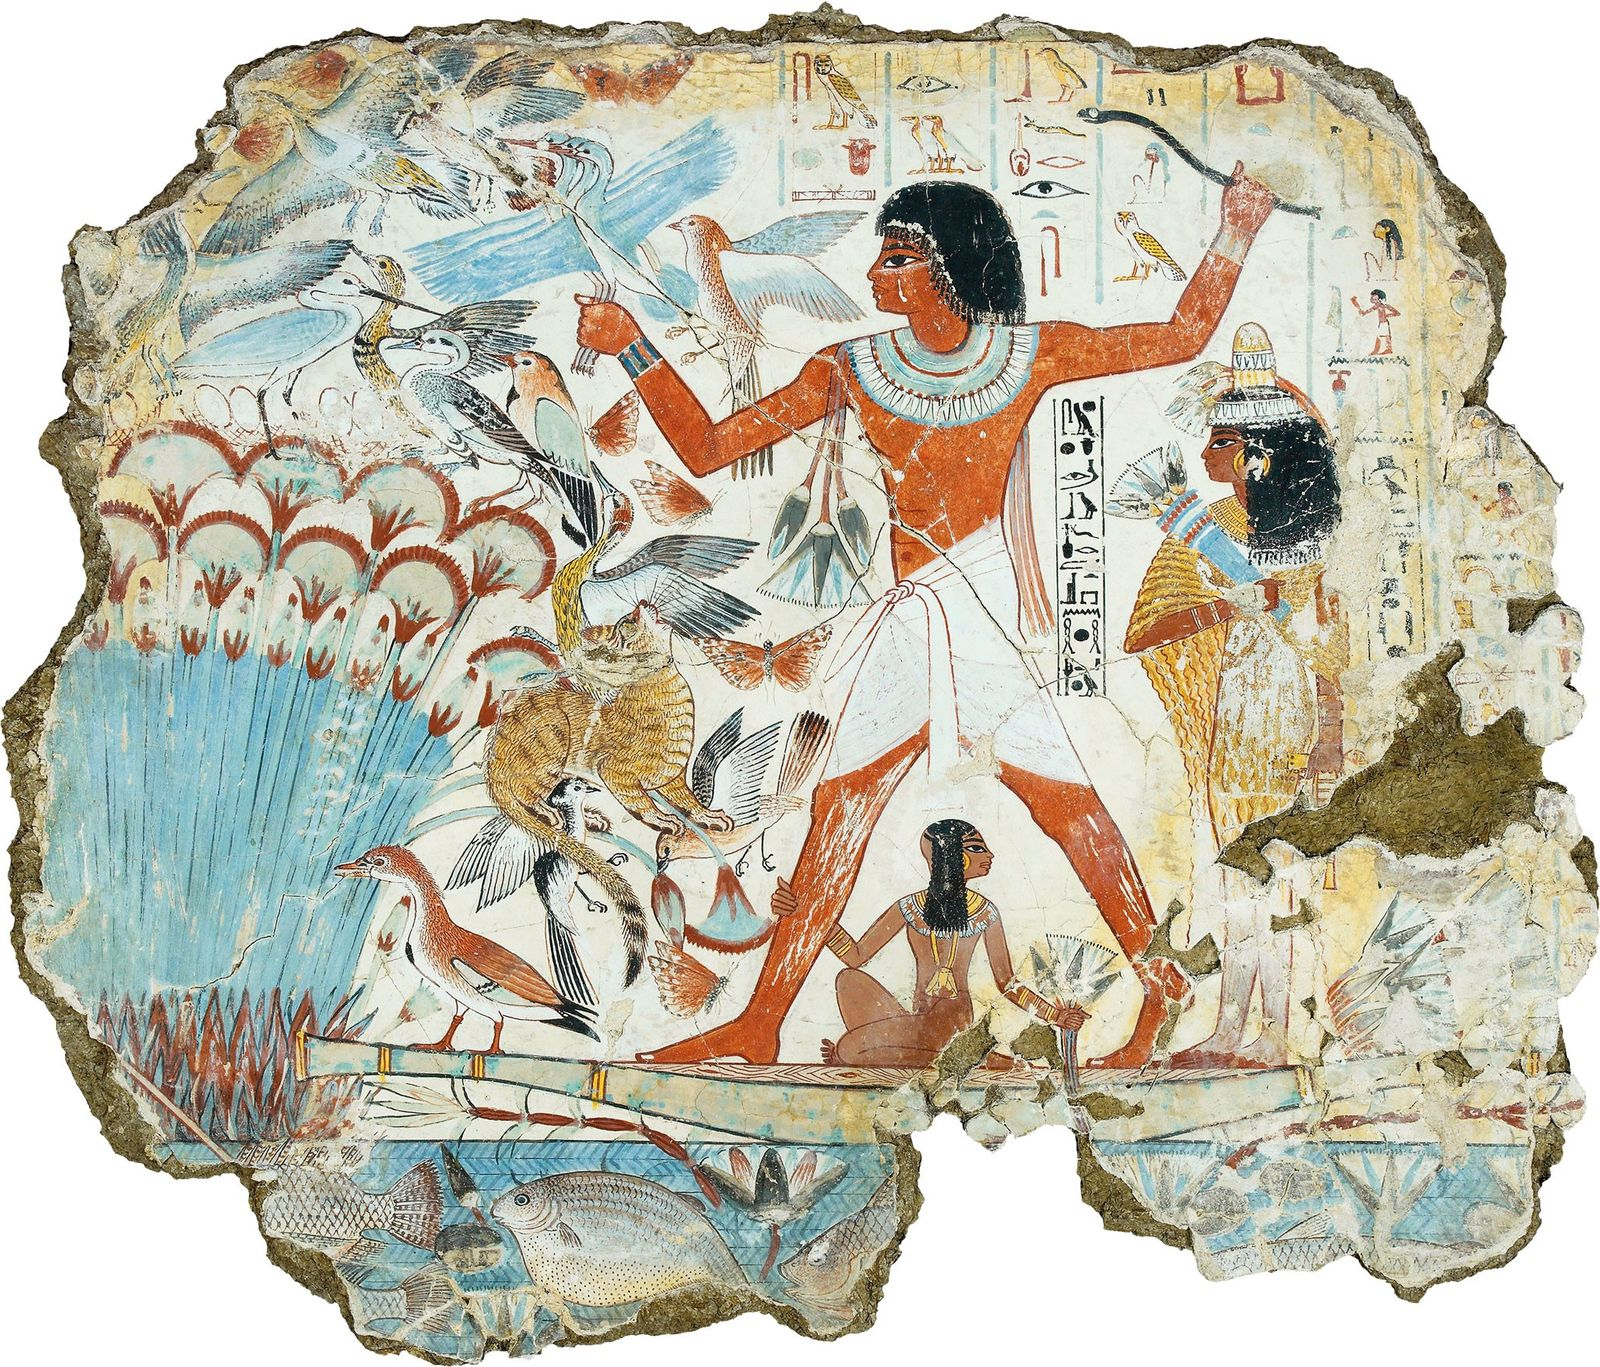 Hunting in the afterlife, a scene depicted on a wall painting from the Theban tomb of ...